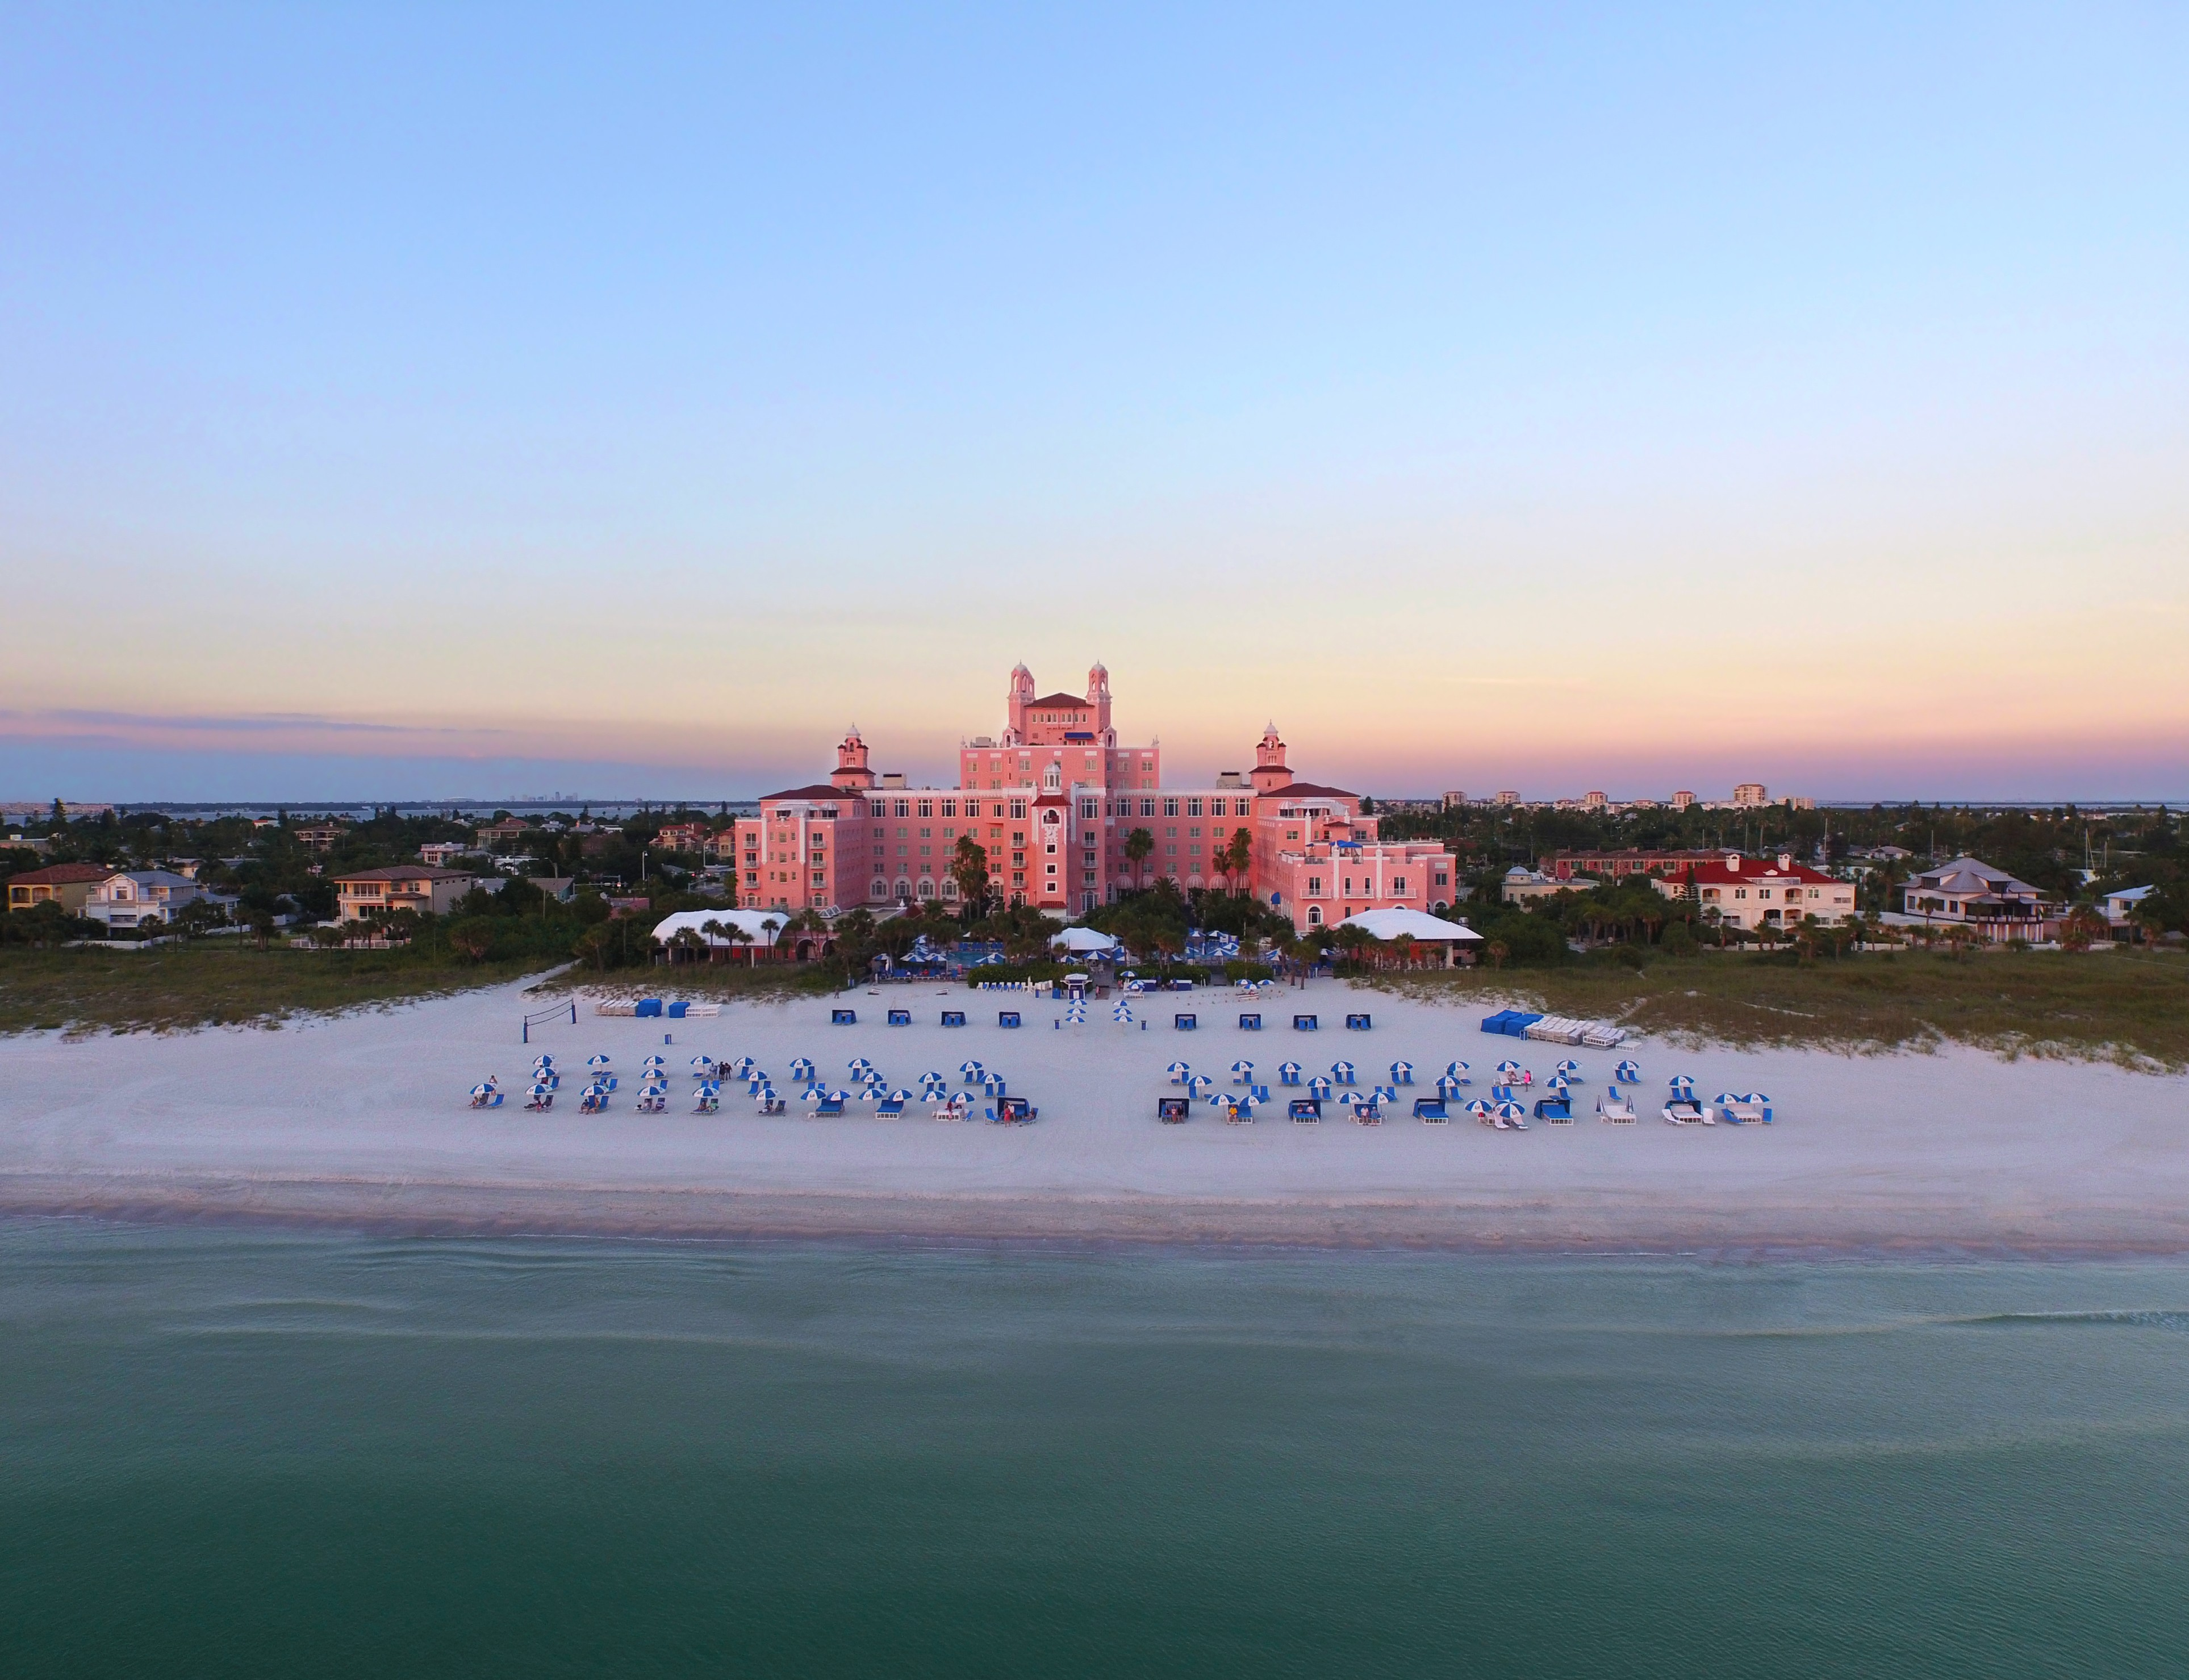 The Don CeSar | LinkedIn